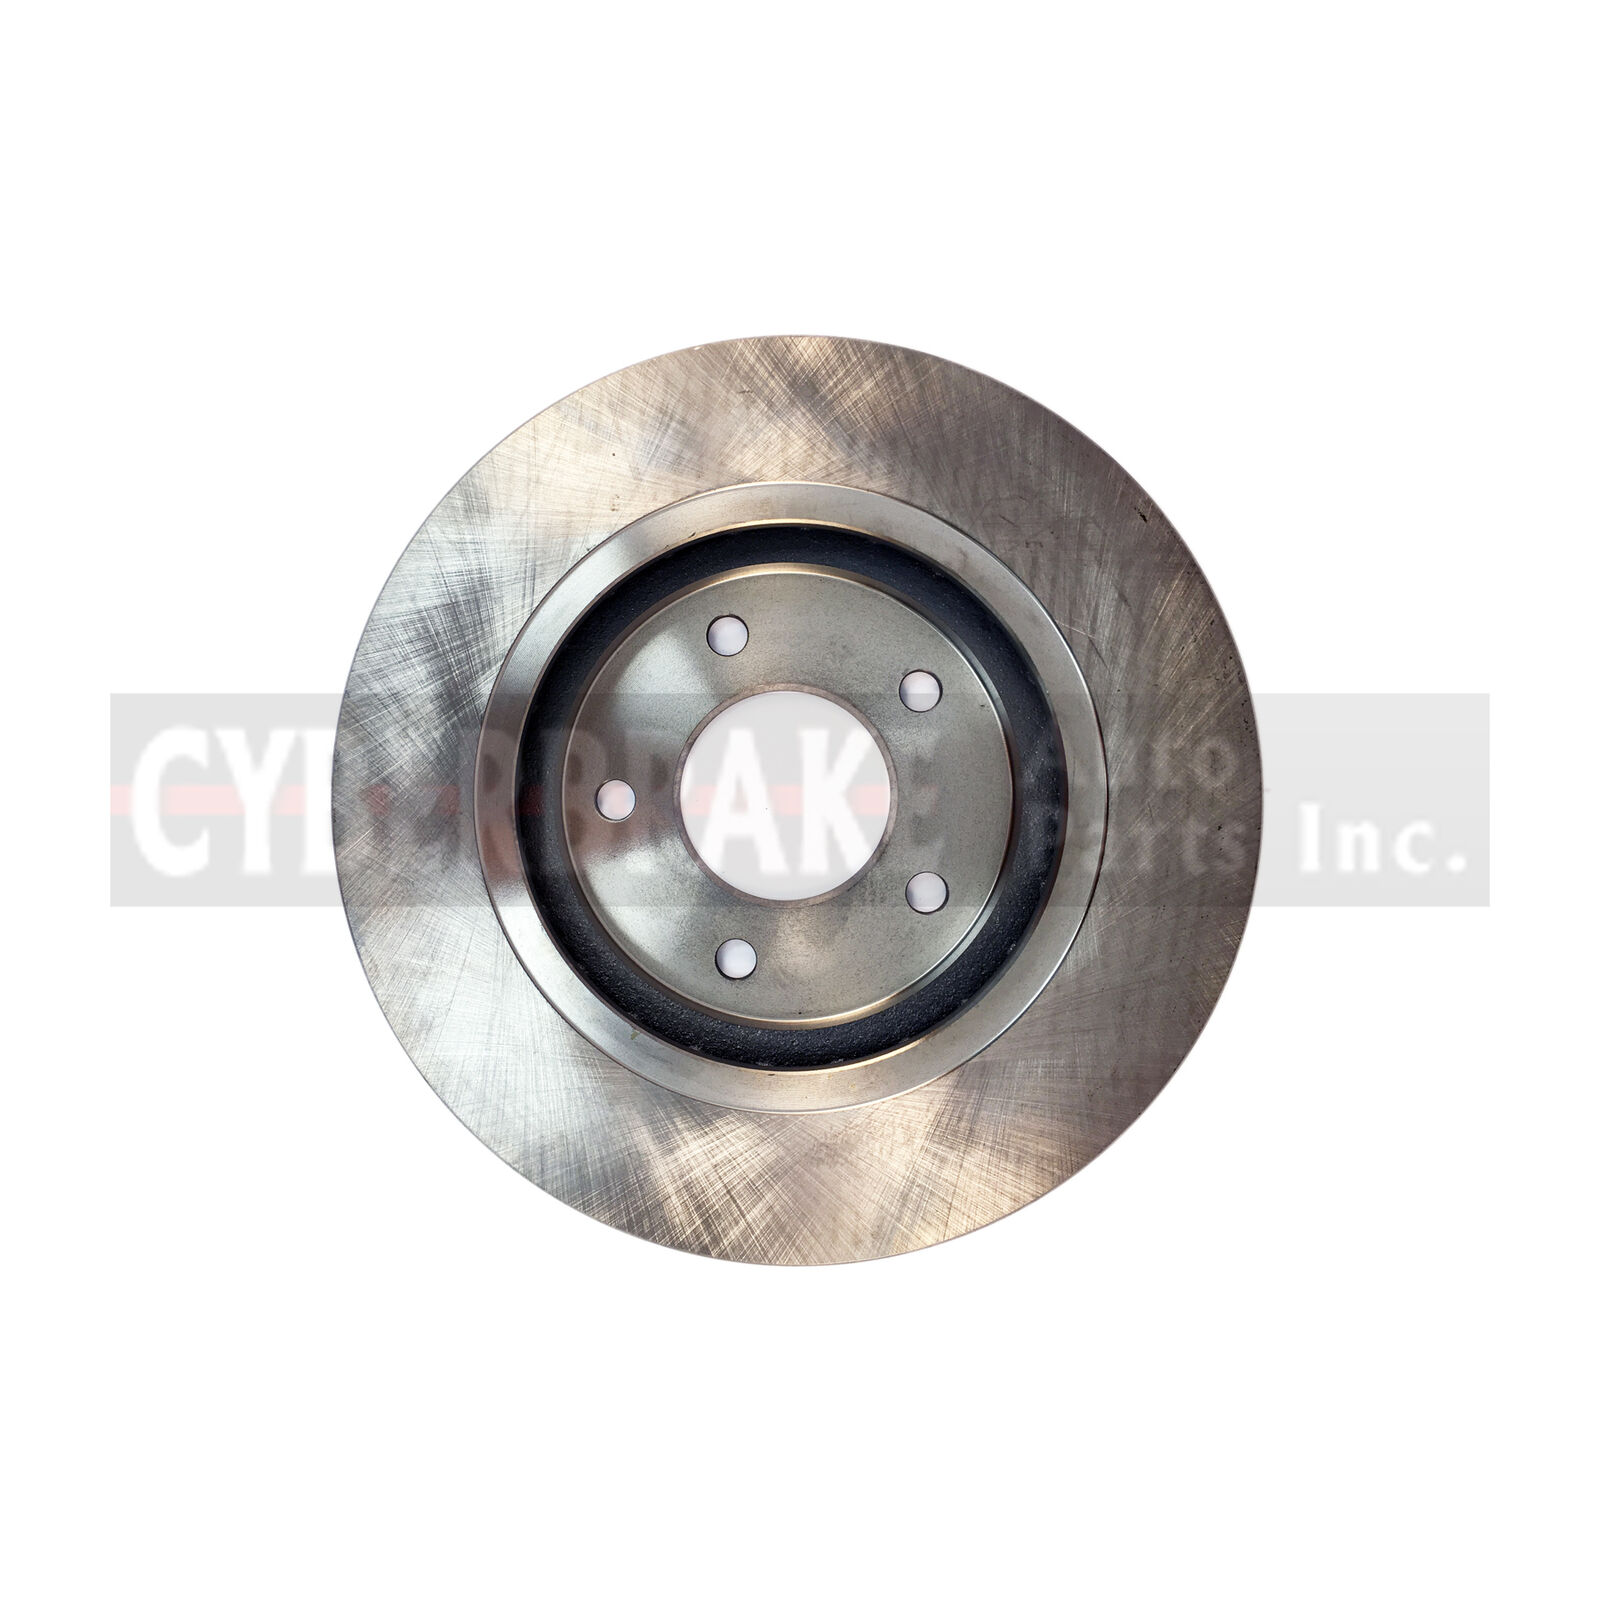 55141 FRONT Brake Rotor Pair of 2 Fits 96-97 Oldsmobile Cutlass Supreme